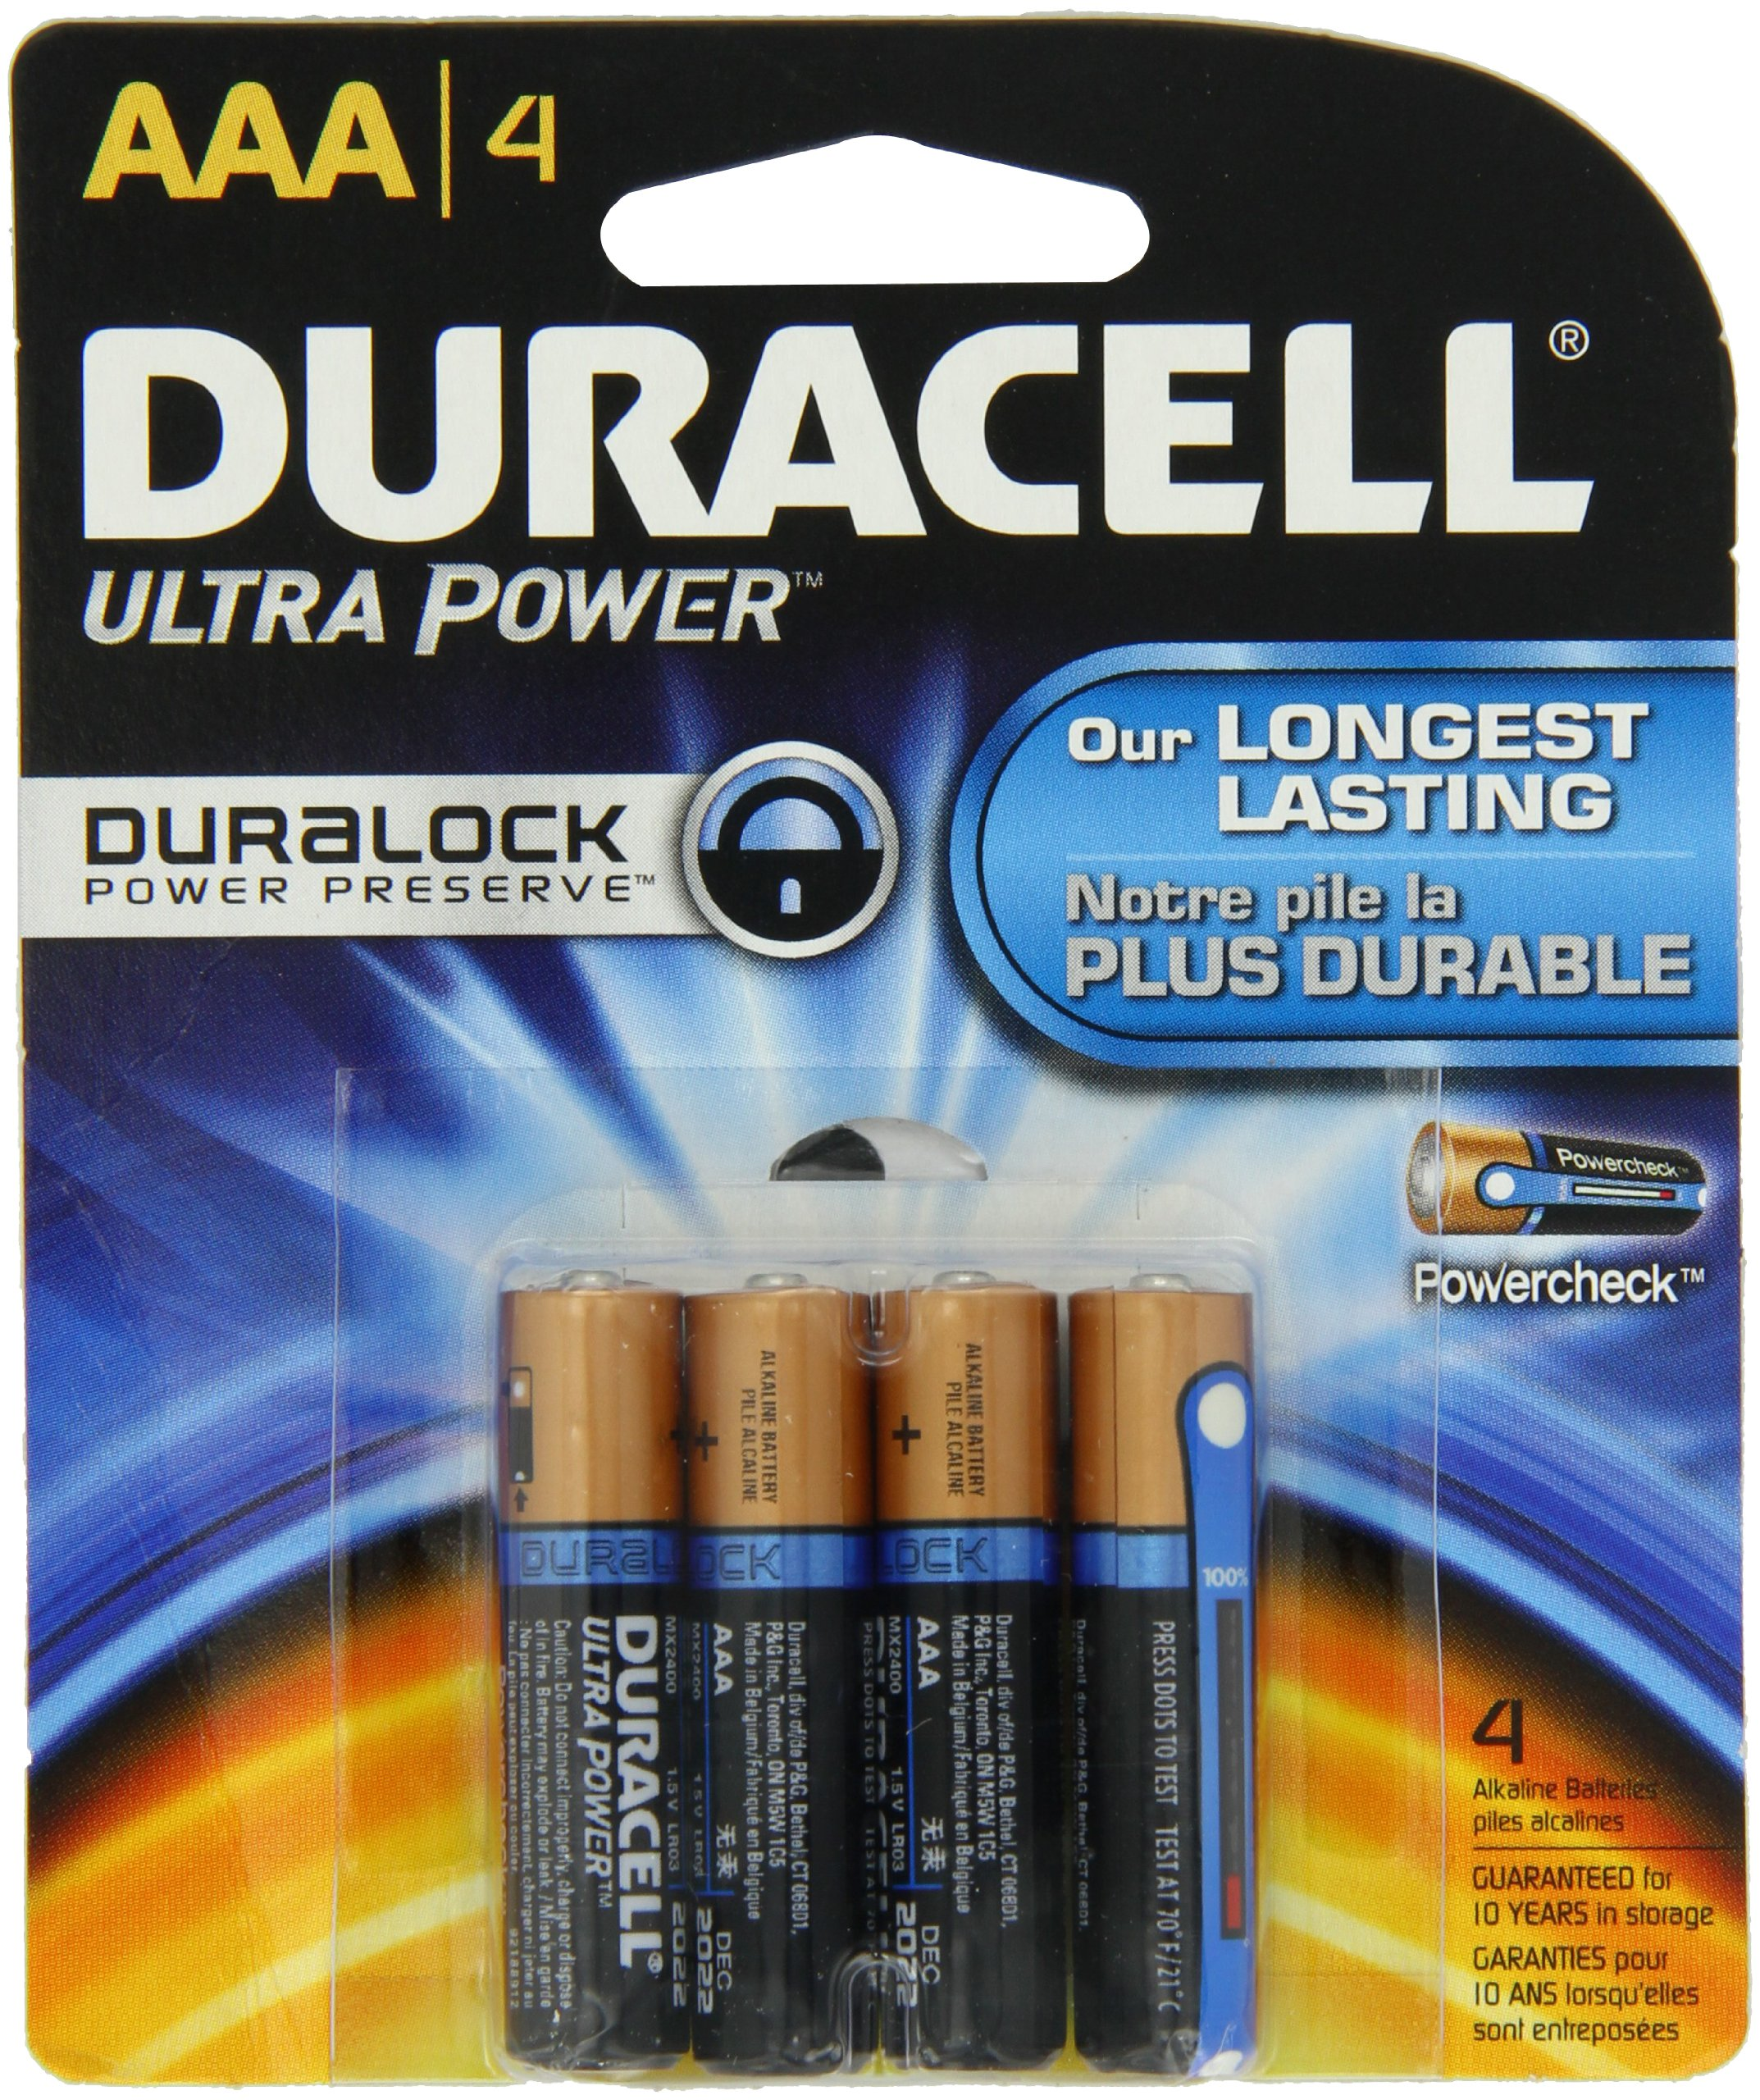 Duracell Ultra Power AAA Batteries 4 Count